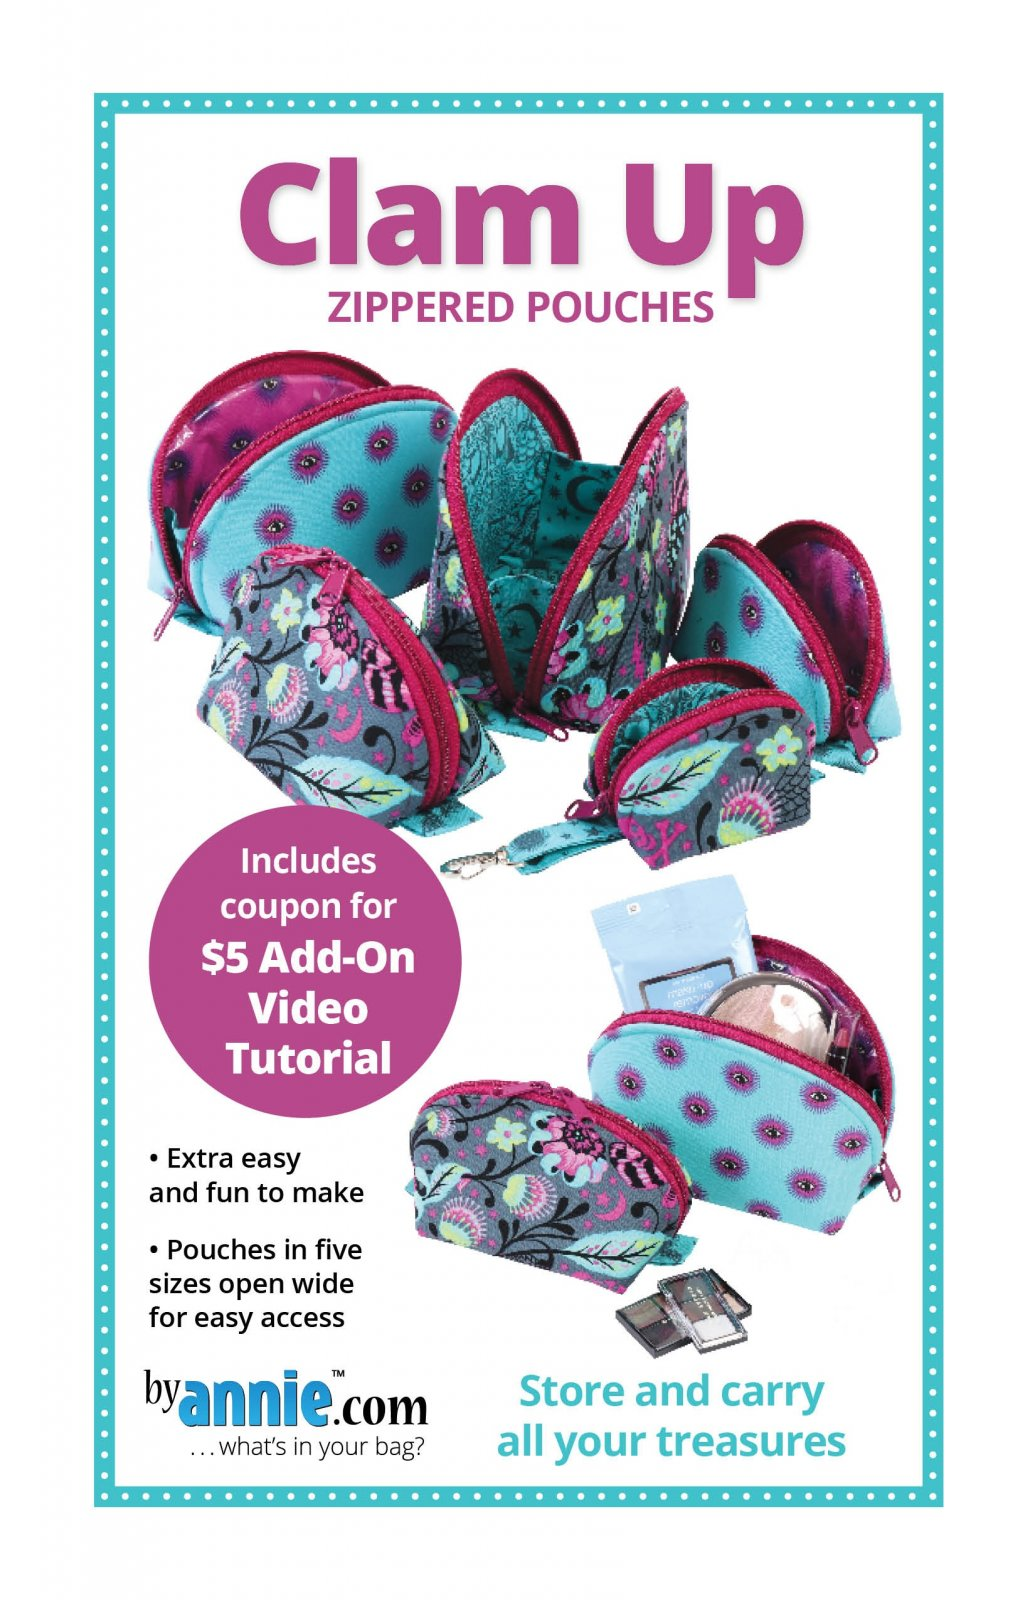 Clam Up! zippered pouch pattern